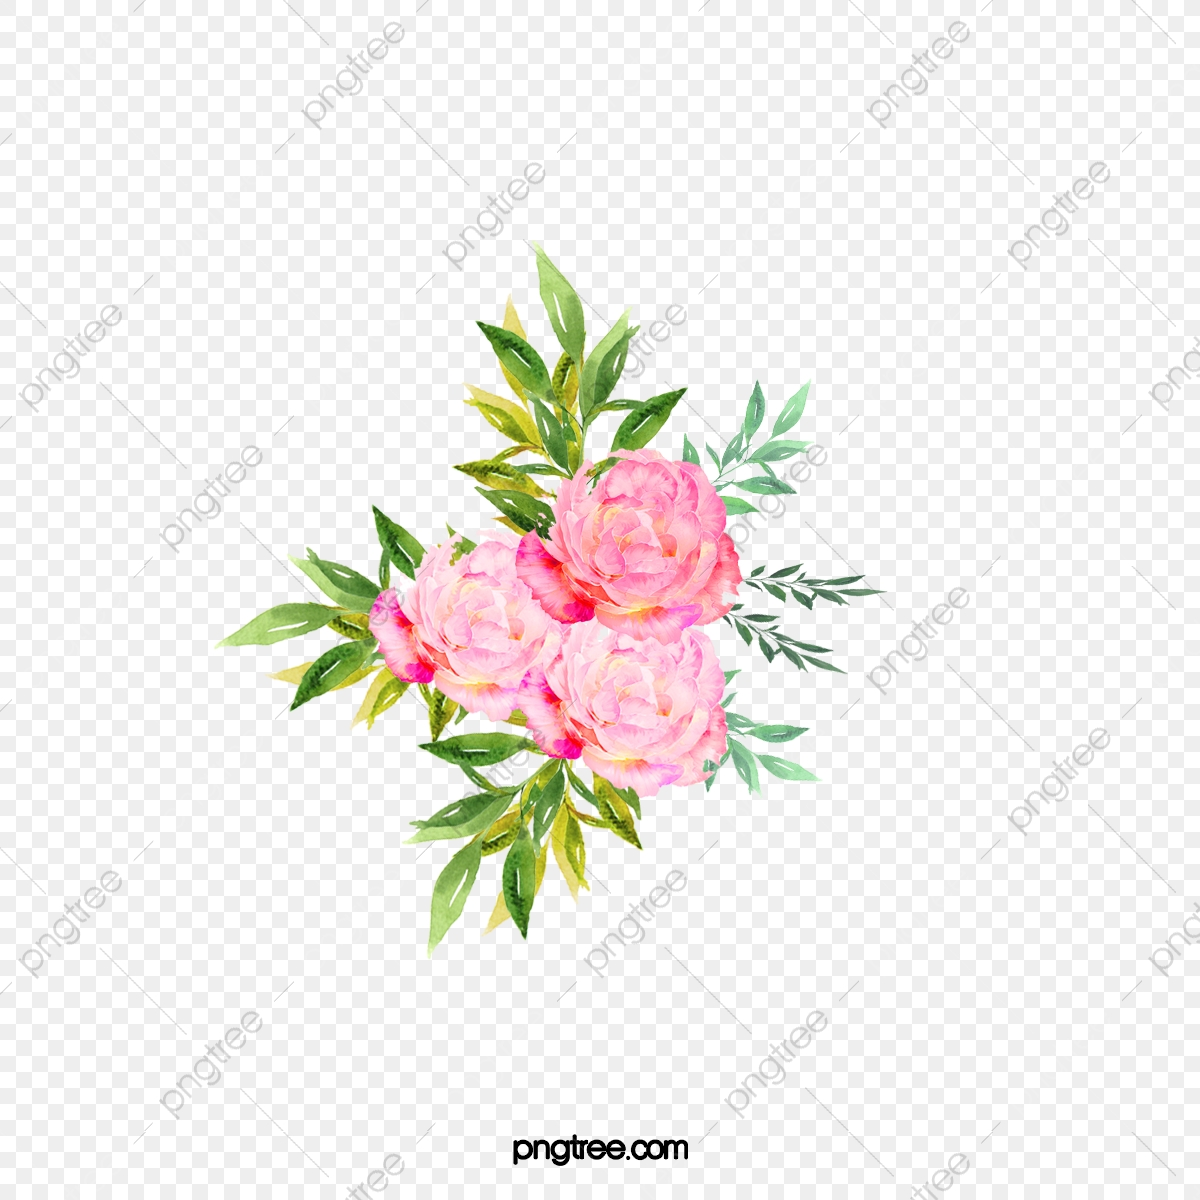 Refined Aesthetic A Bouquet Of Flowers Sen Department Watercolor Flowers Png Transparent Clipart Image And Psd File For Free Download